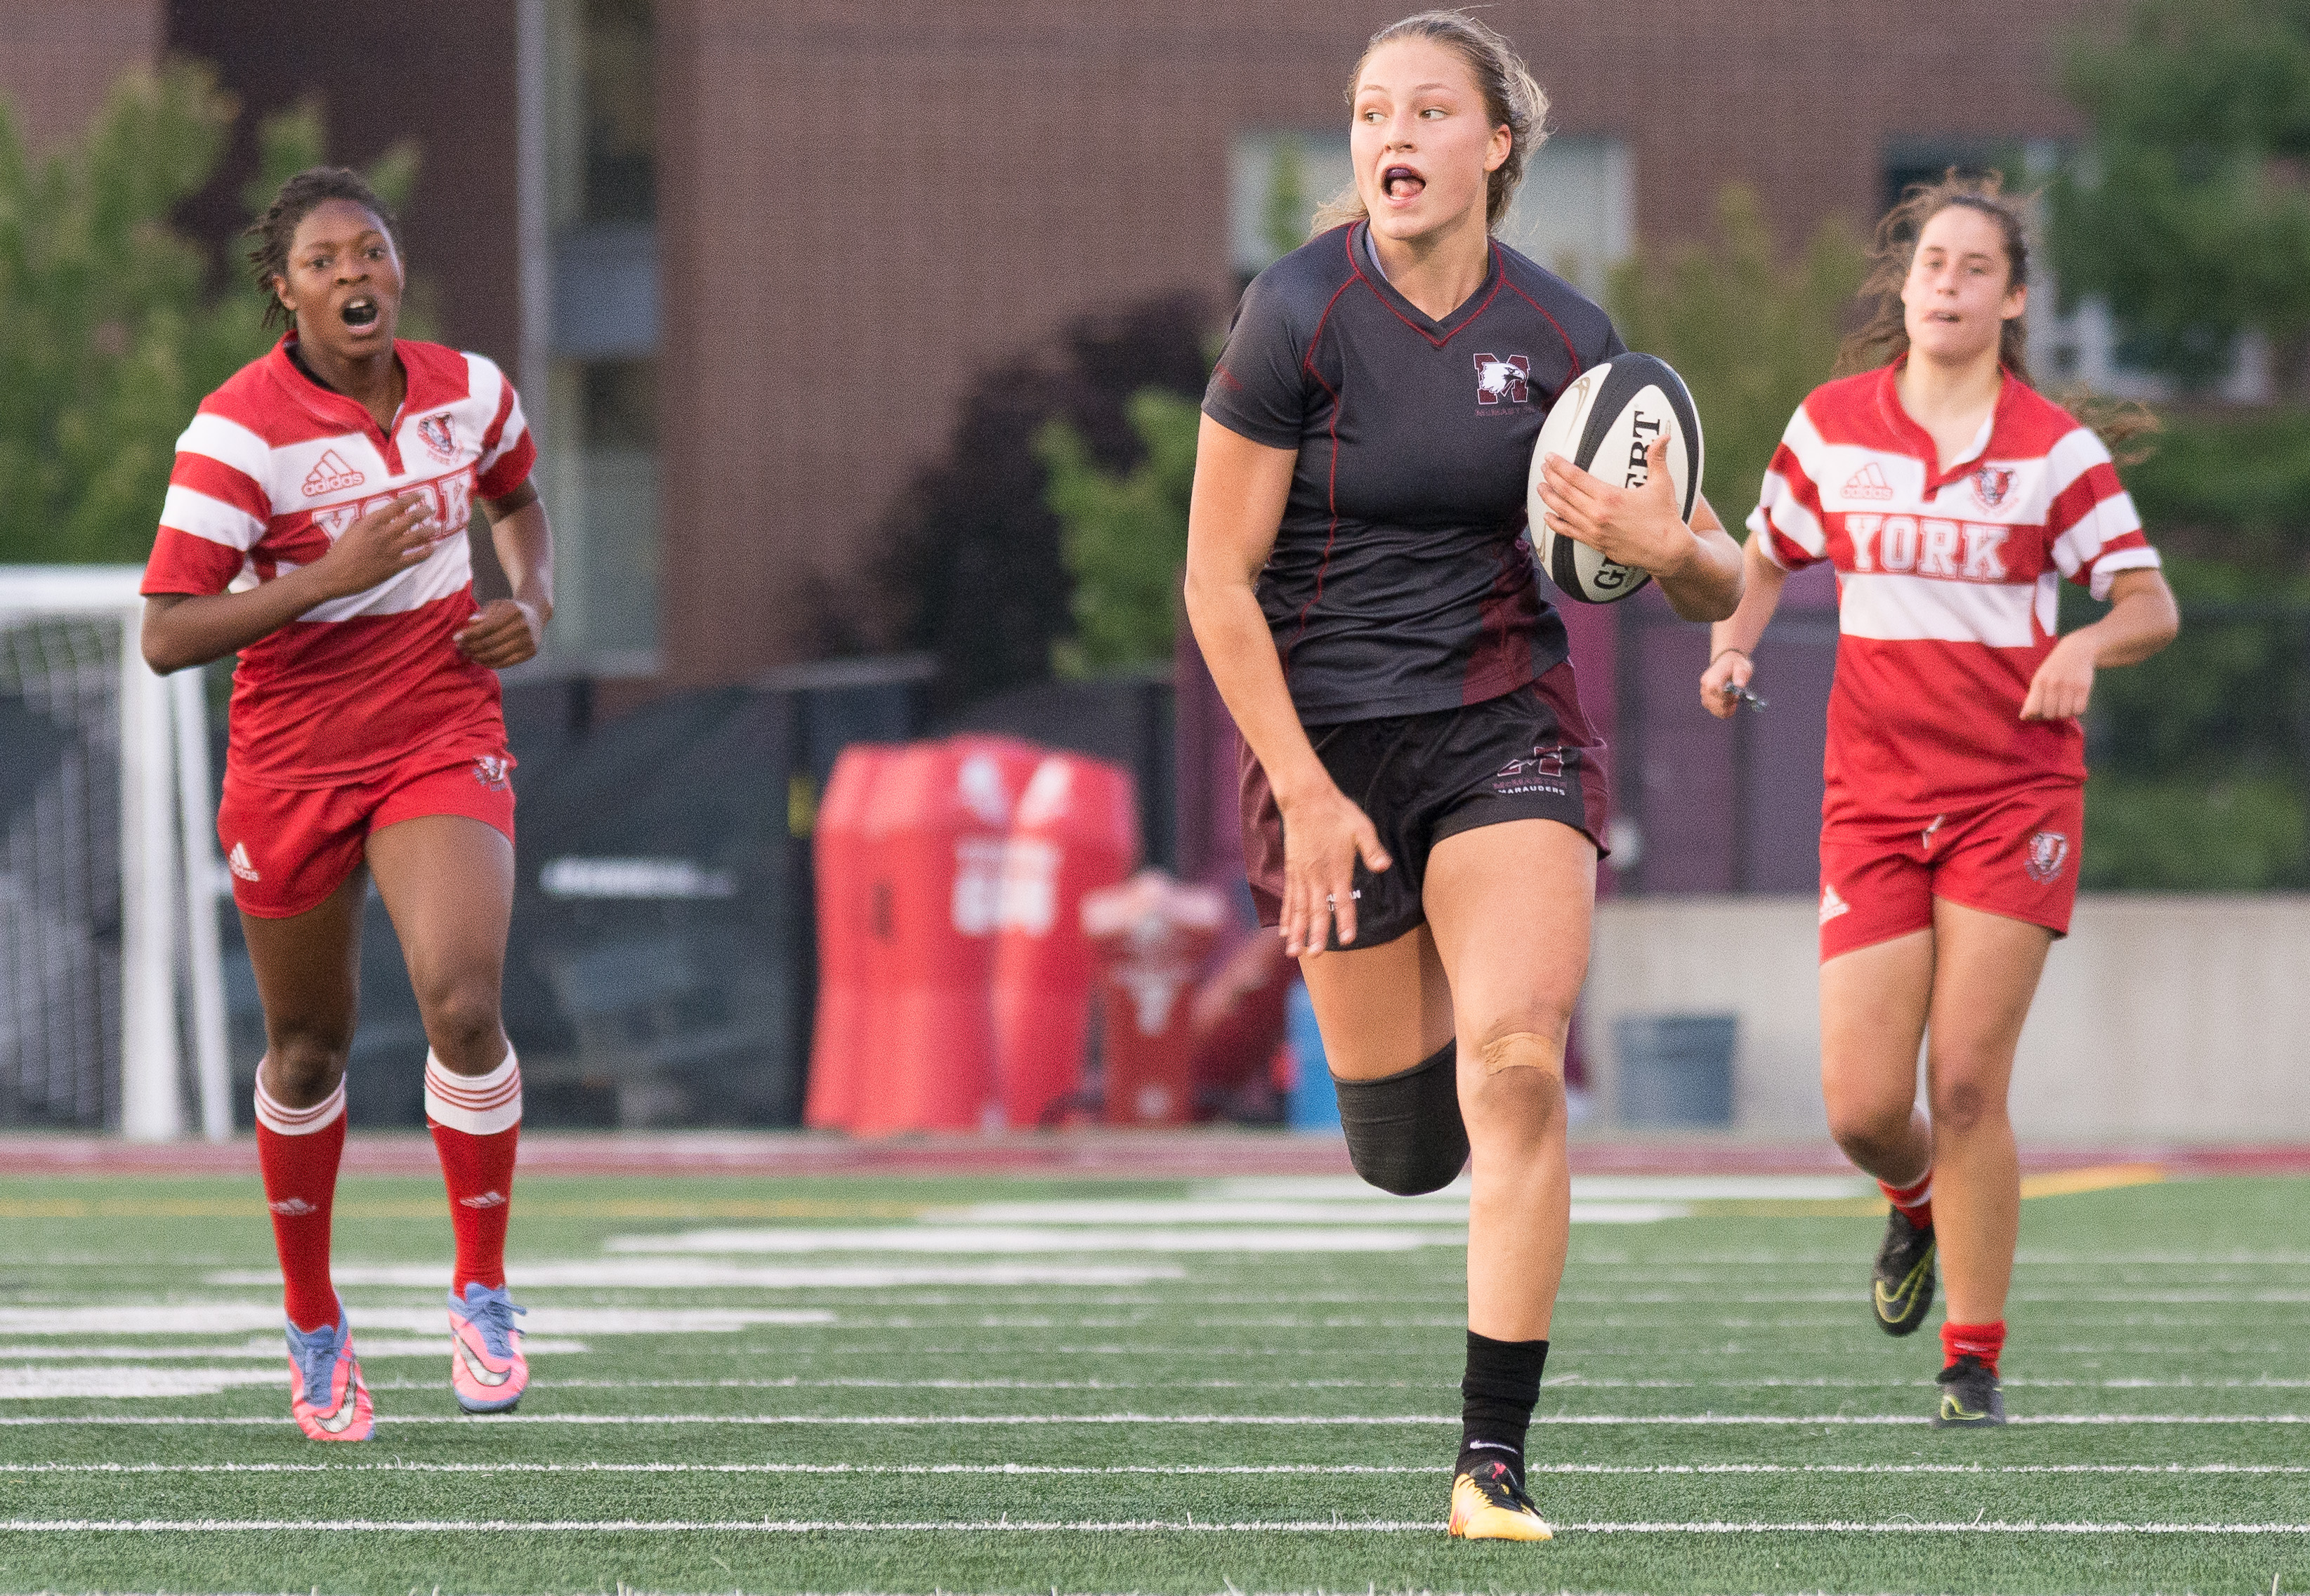 Unanswered offence; undefeated season The women's rugby team wins another game this season, continuing to dominate every team in their path